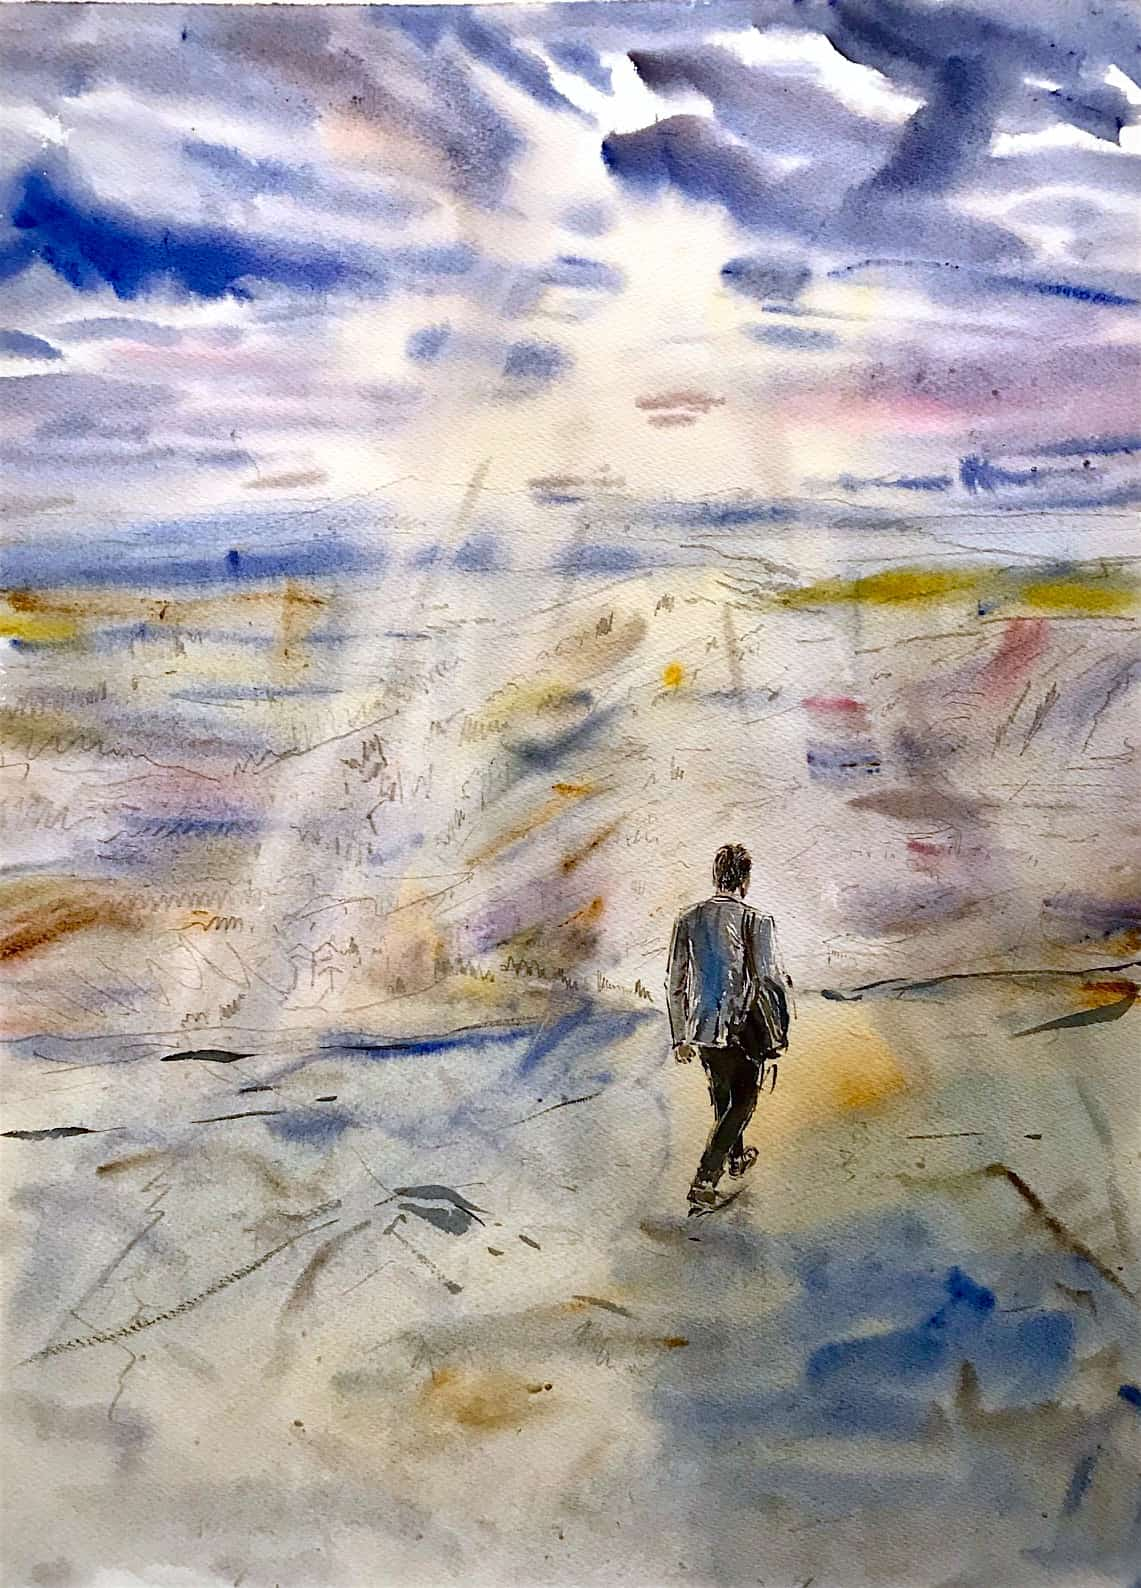 The Poet's View of the End of the World